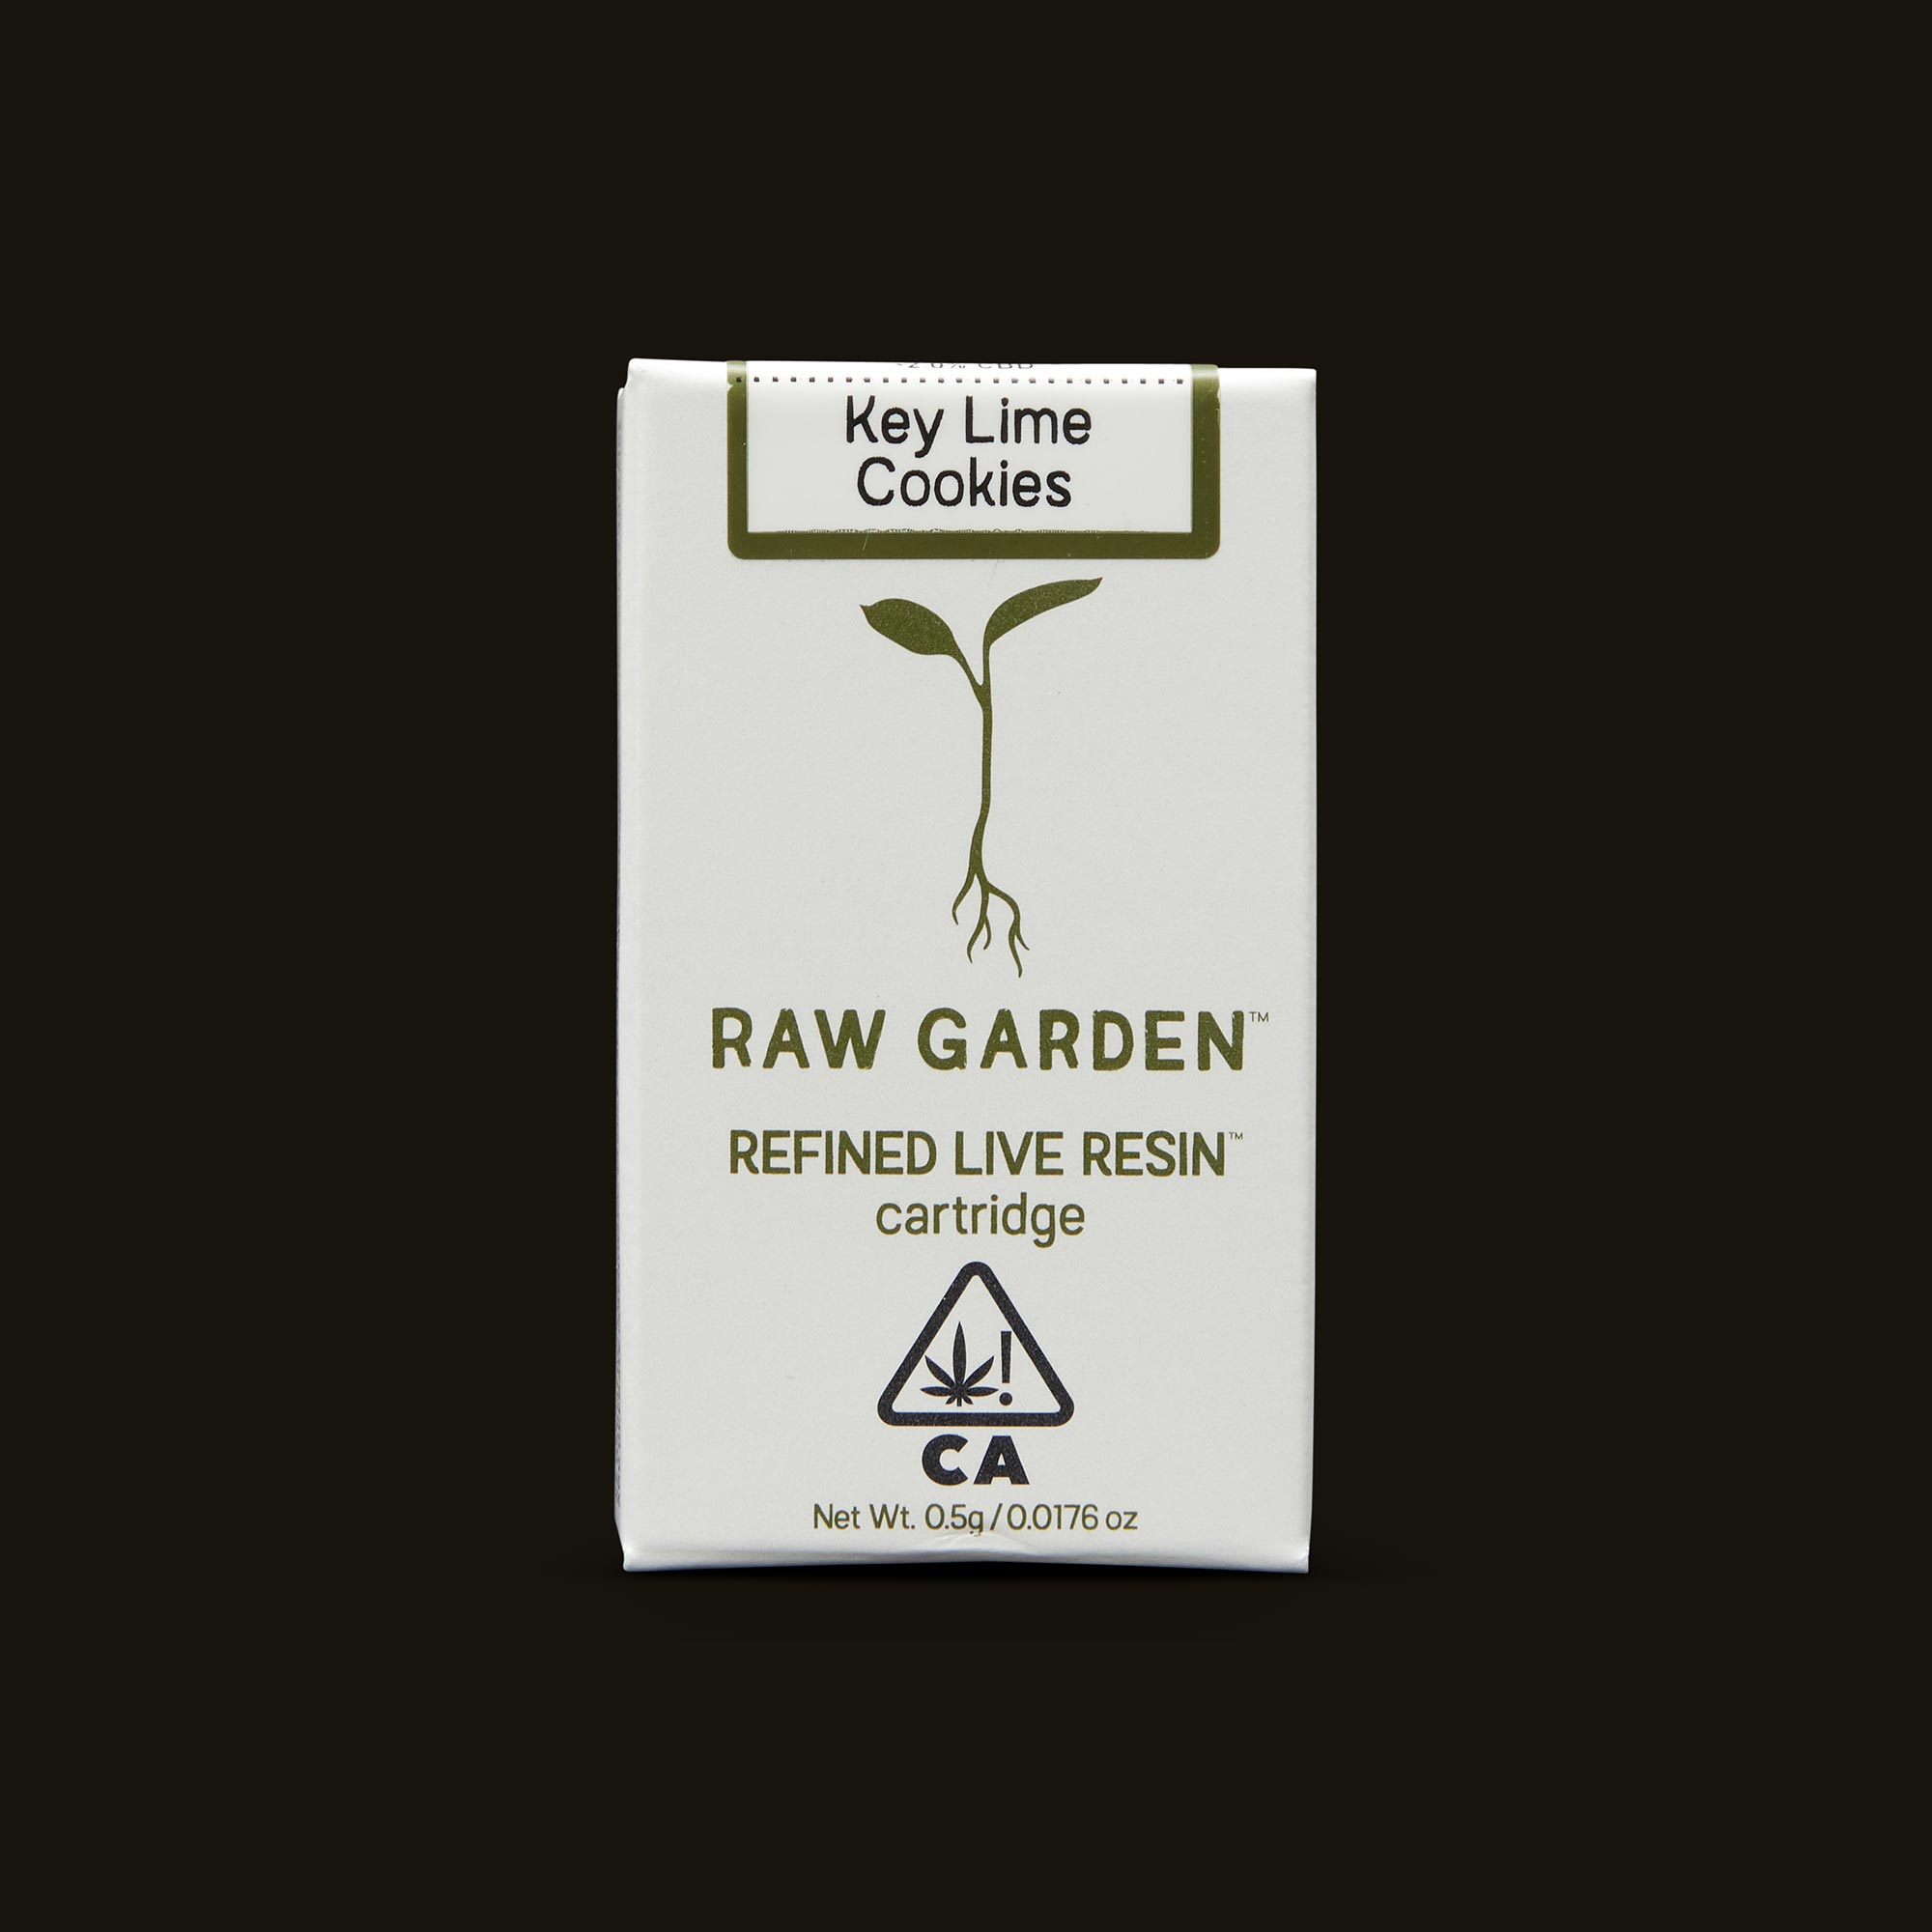 Raw Garden Key Lime Cookies Live Resin Cartridge Front Packaging